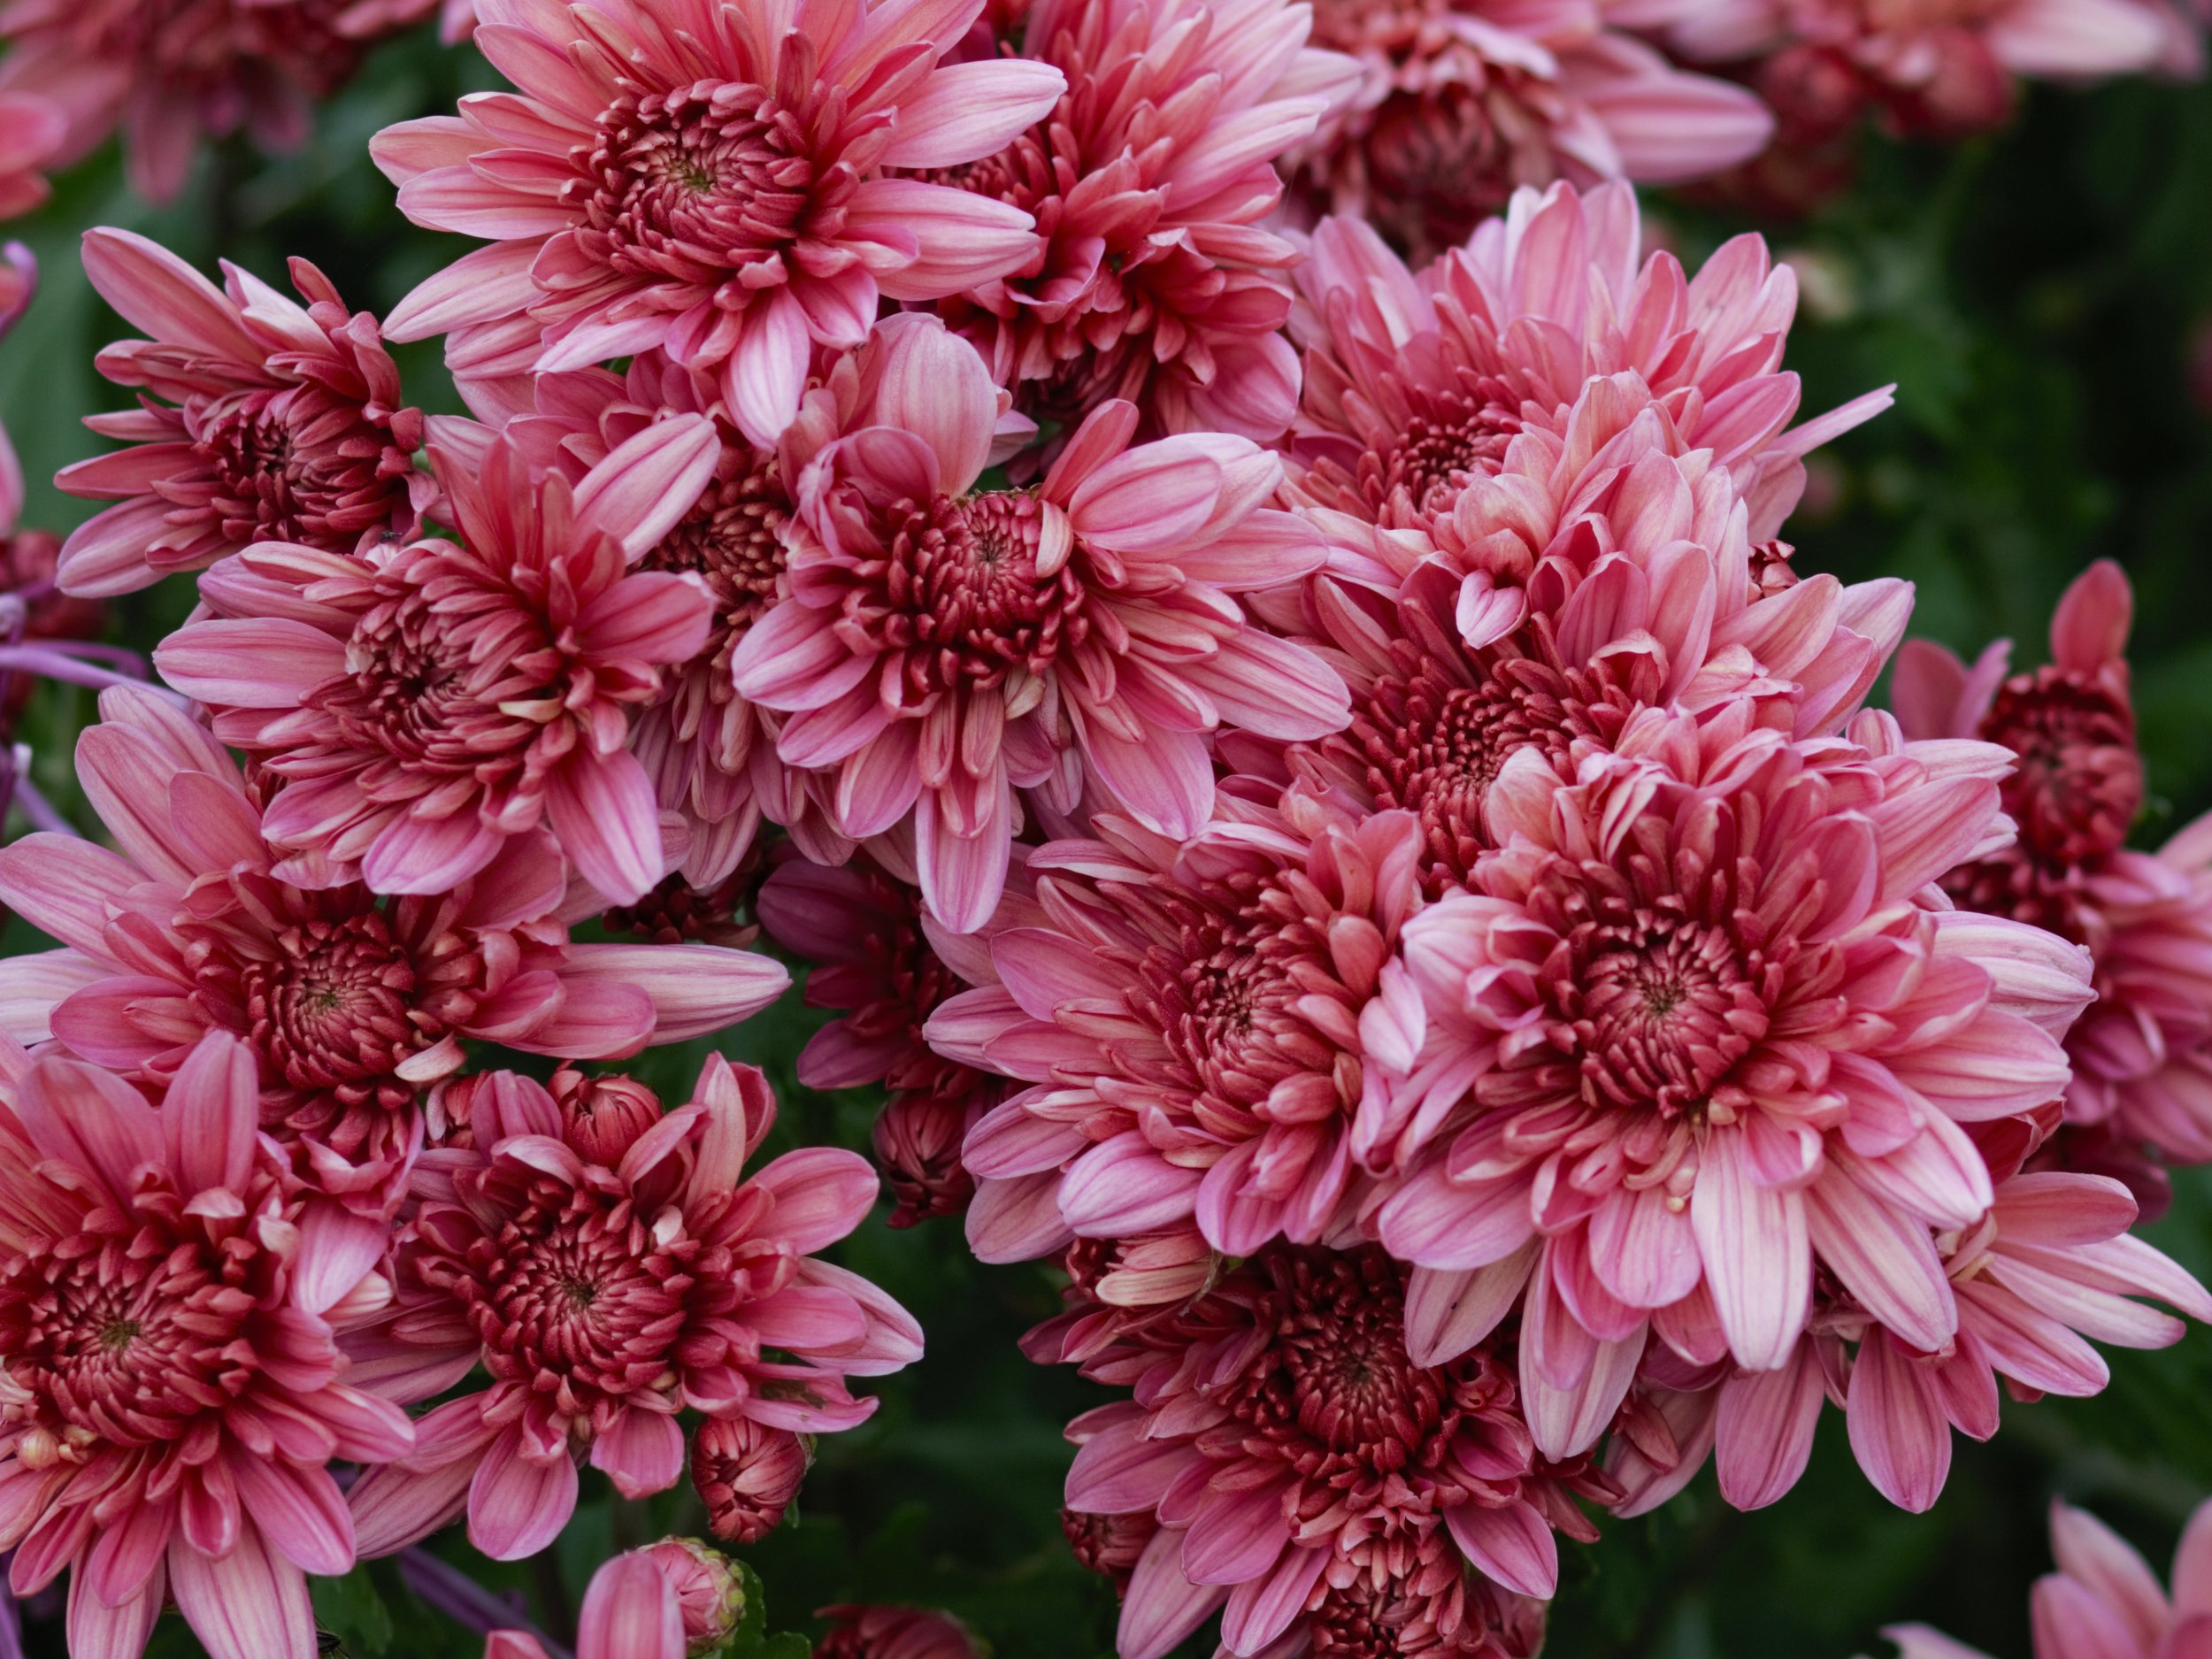 Heirloom mums